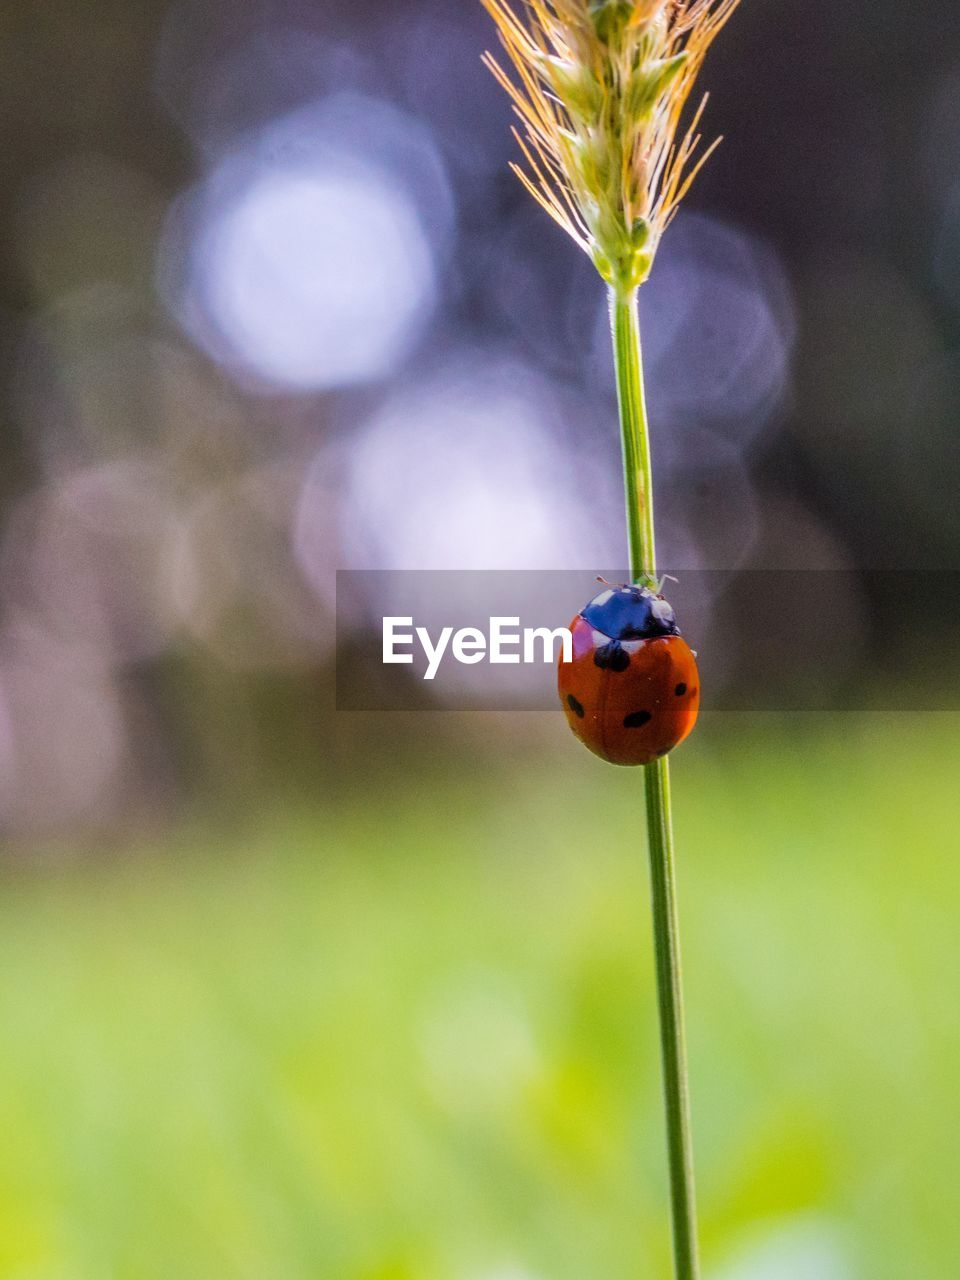 ladybug, beetle, plant, insect, invertebrate, animal, focus on foreground, animal wildlife, animal themes, animals in the wild, one animal, nature, close-up, day, spotted, no people, plant stem, outdoors, flower, growth, small